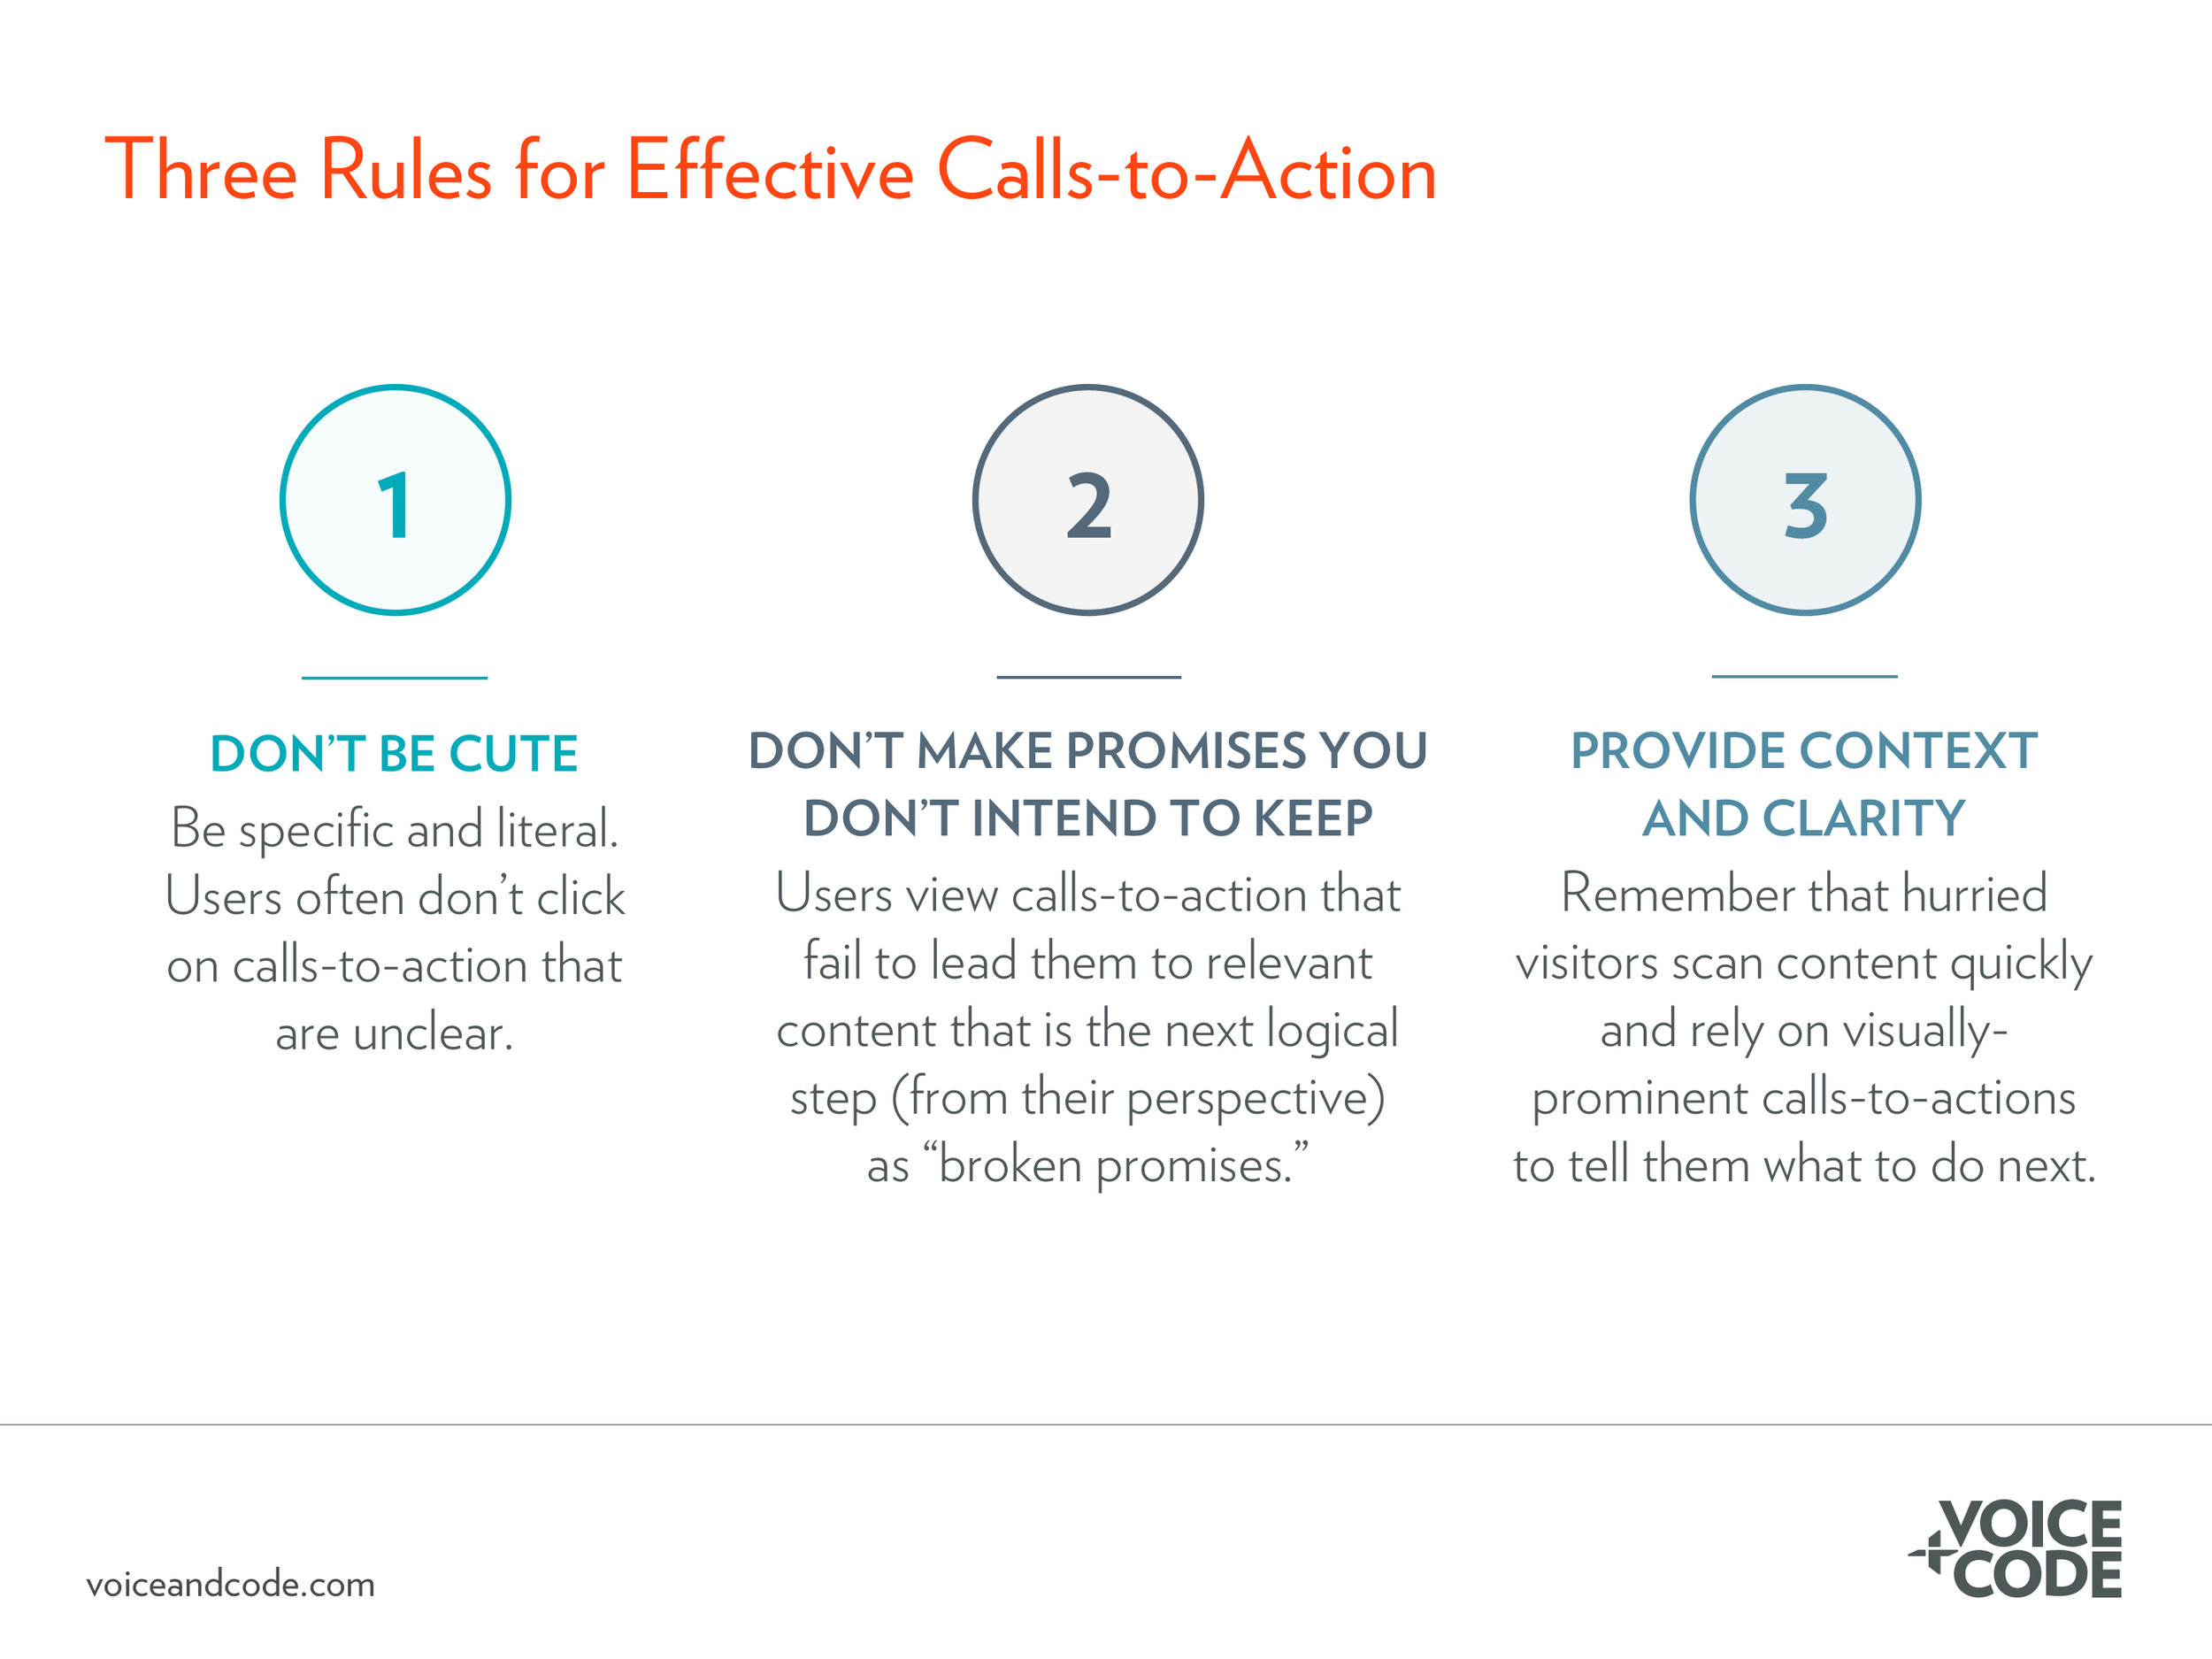 Effective Calls-to-Action